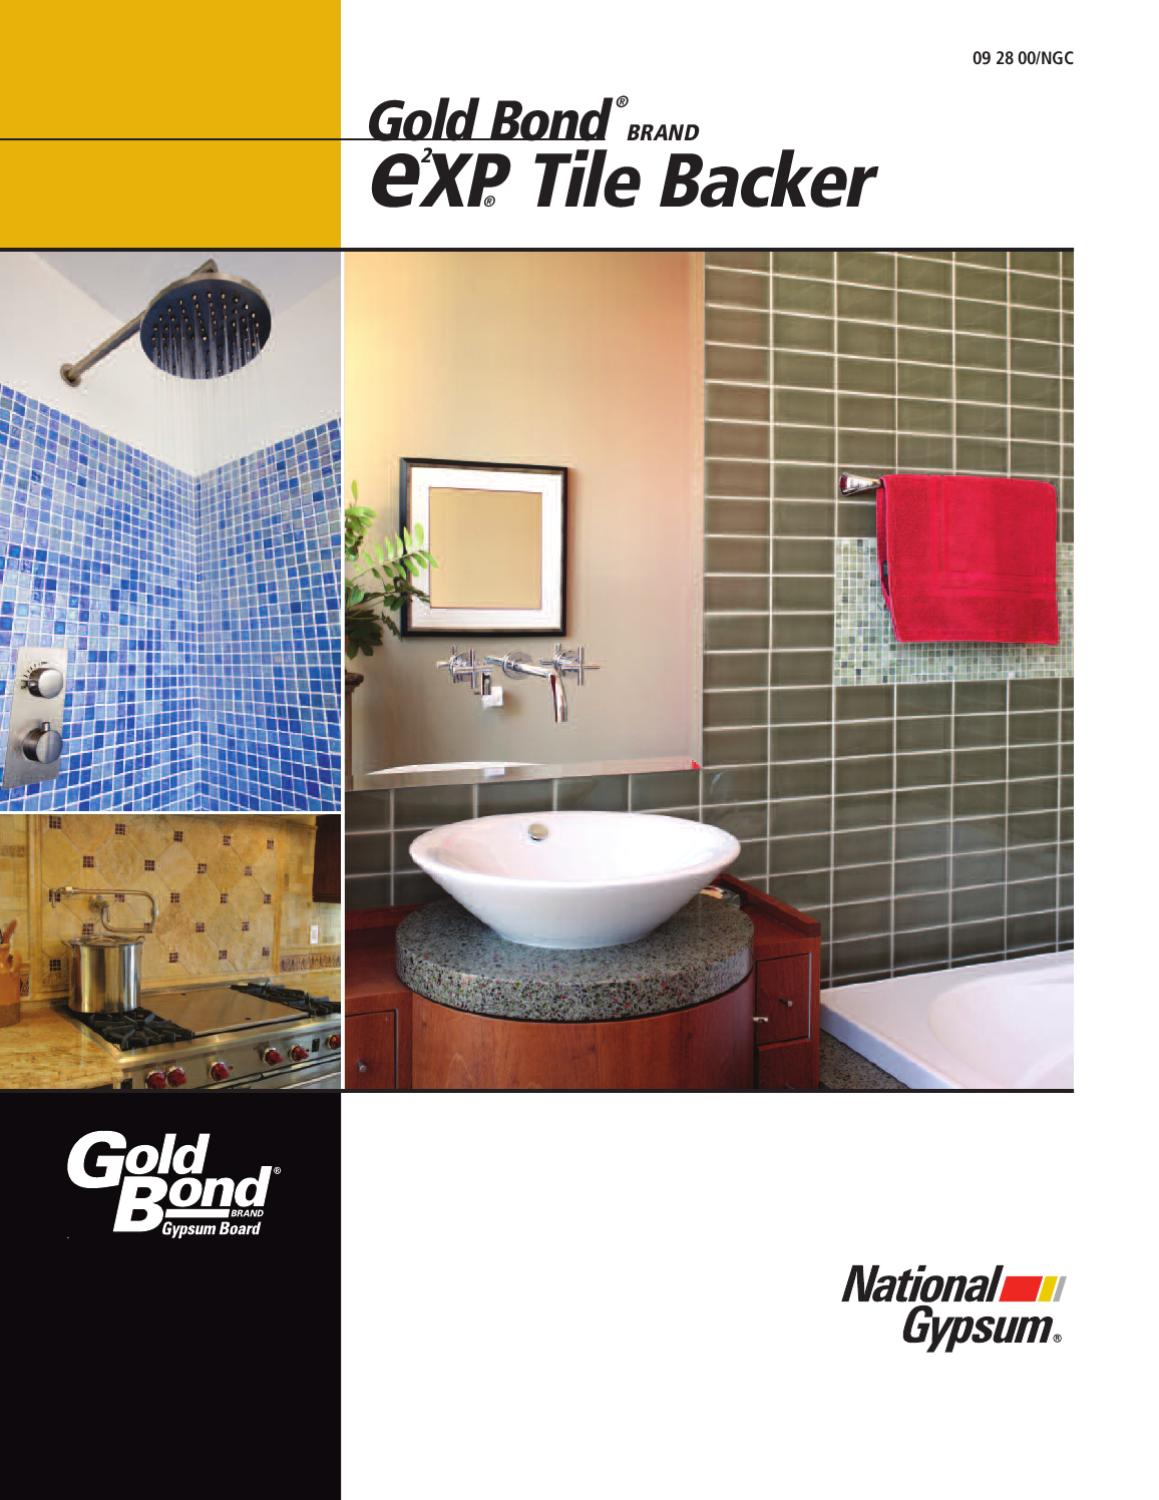 Moisture Resistant Gypsum Board Backs And Sides Front : E²xp tile backer by macopa issuu